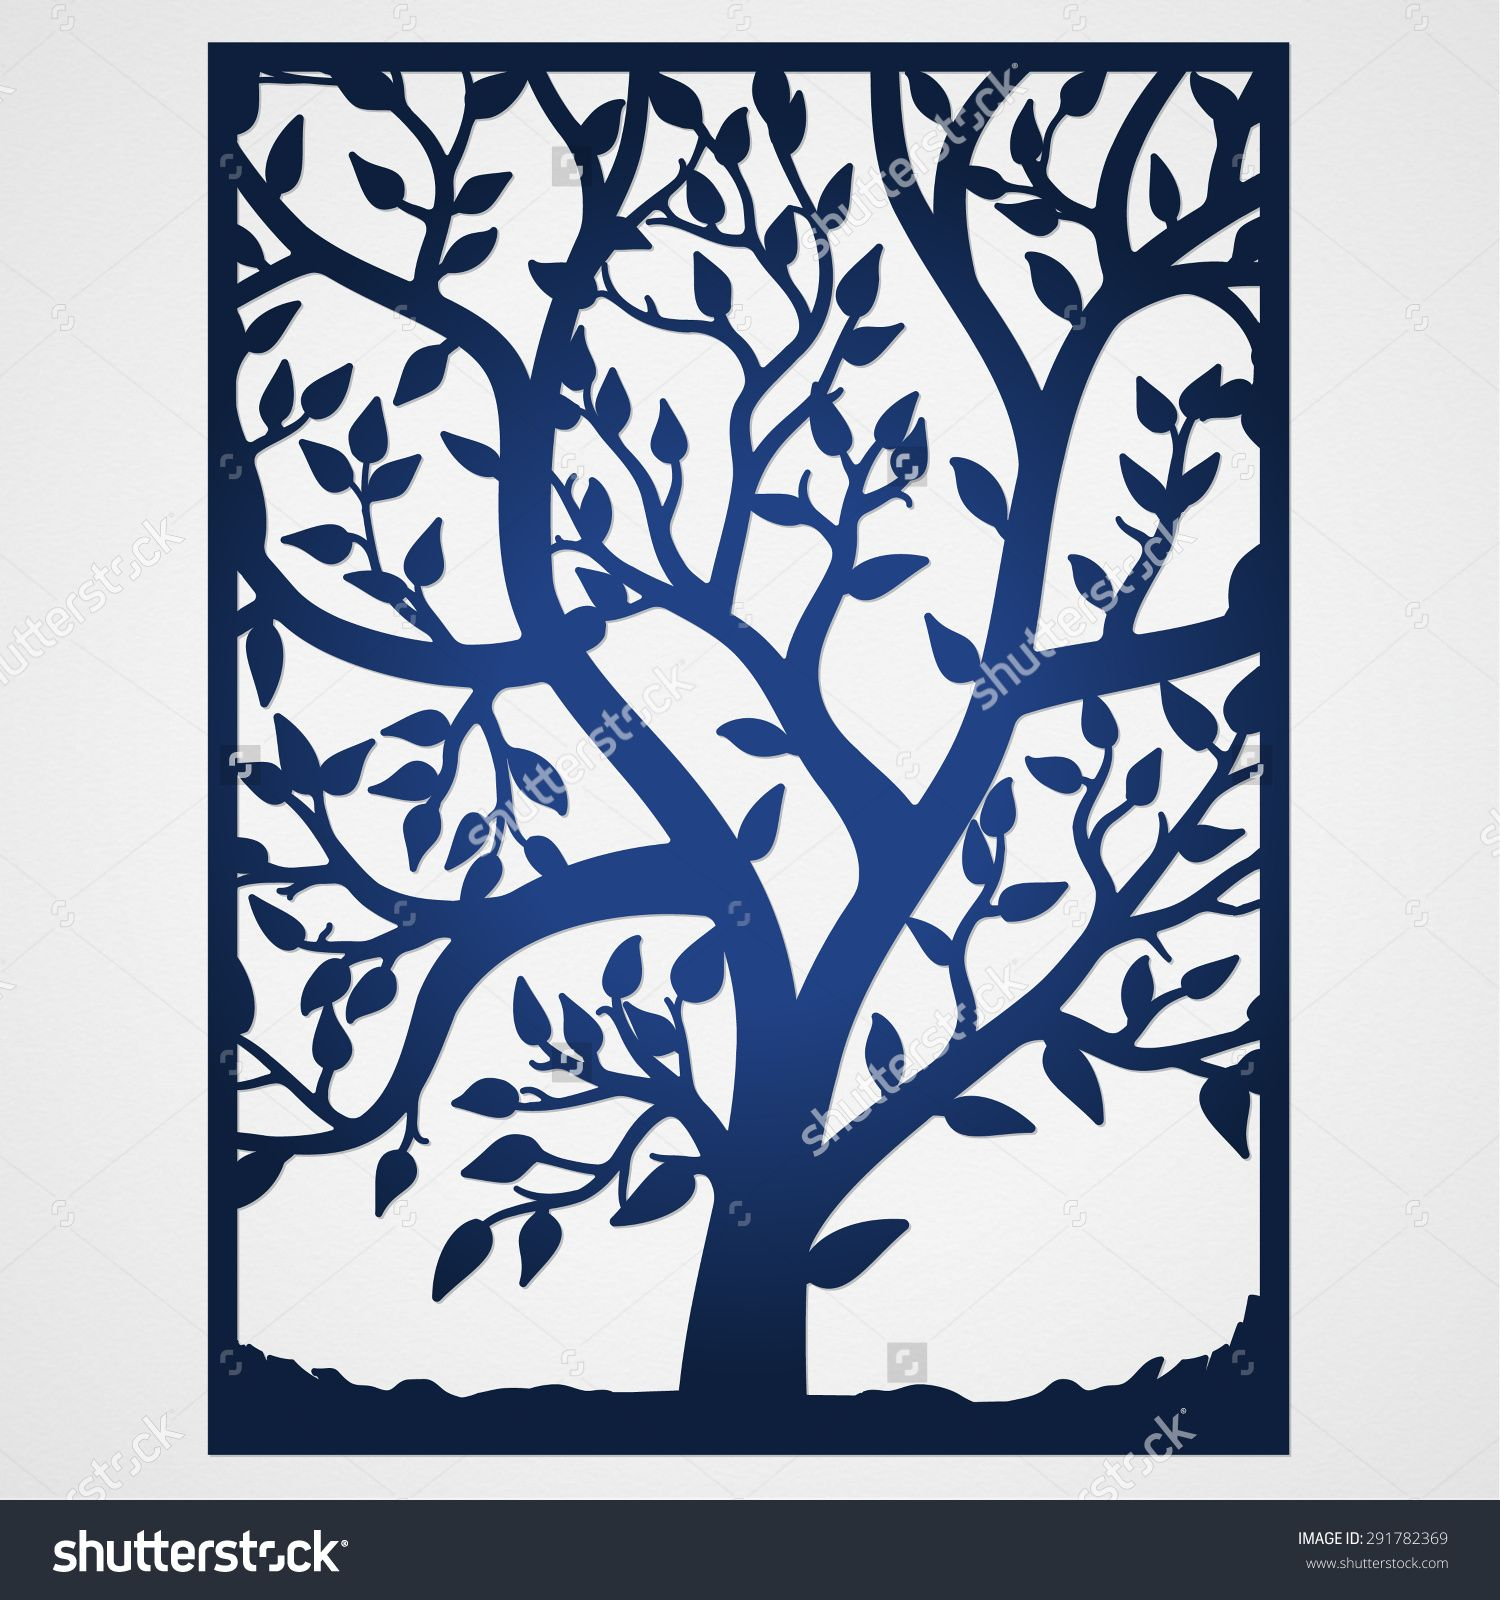 free laser cutter templates - abstract frame with tree may be used for lasercutting